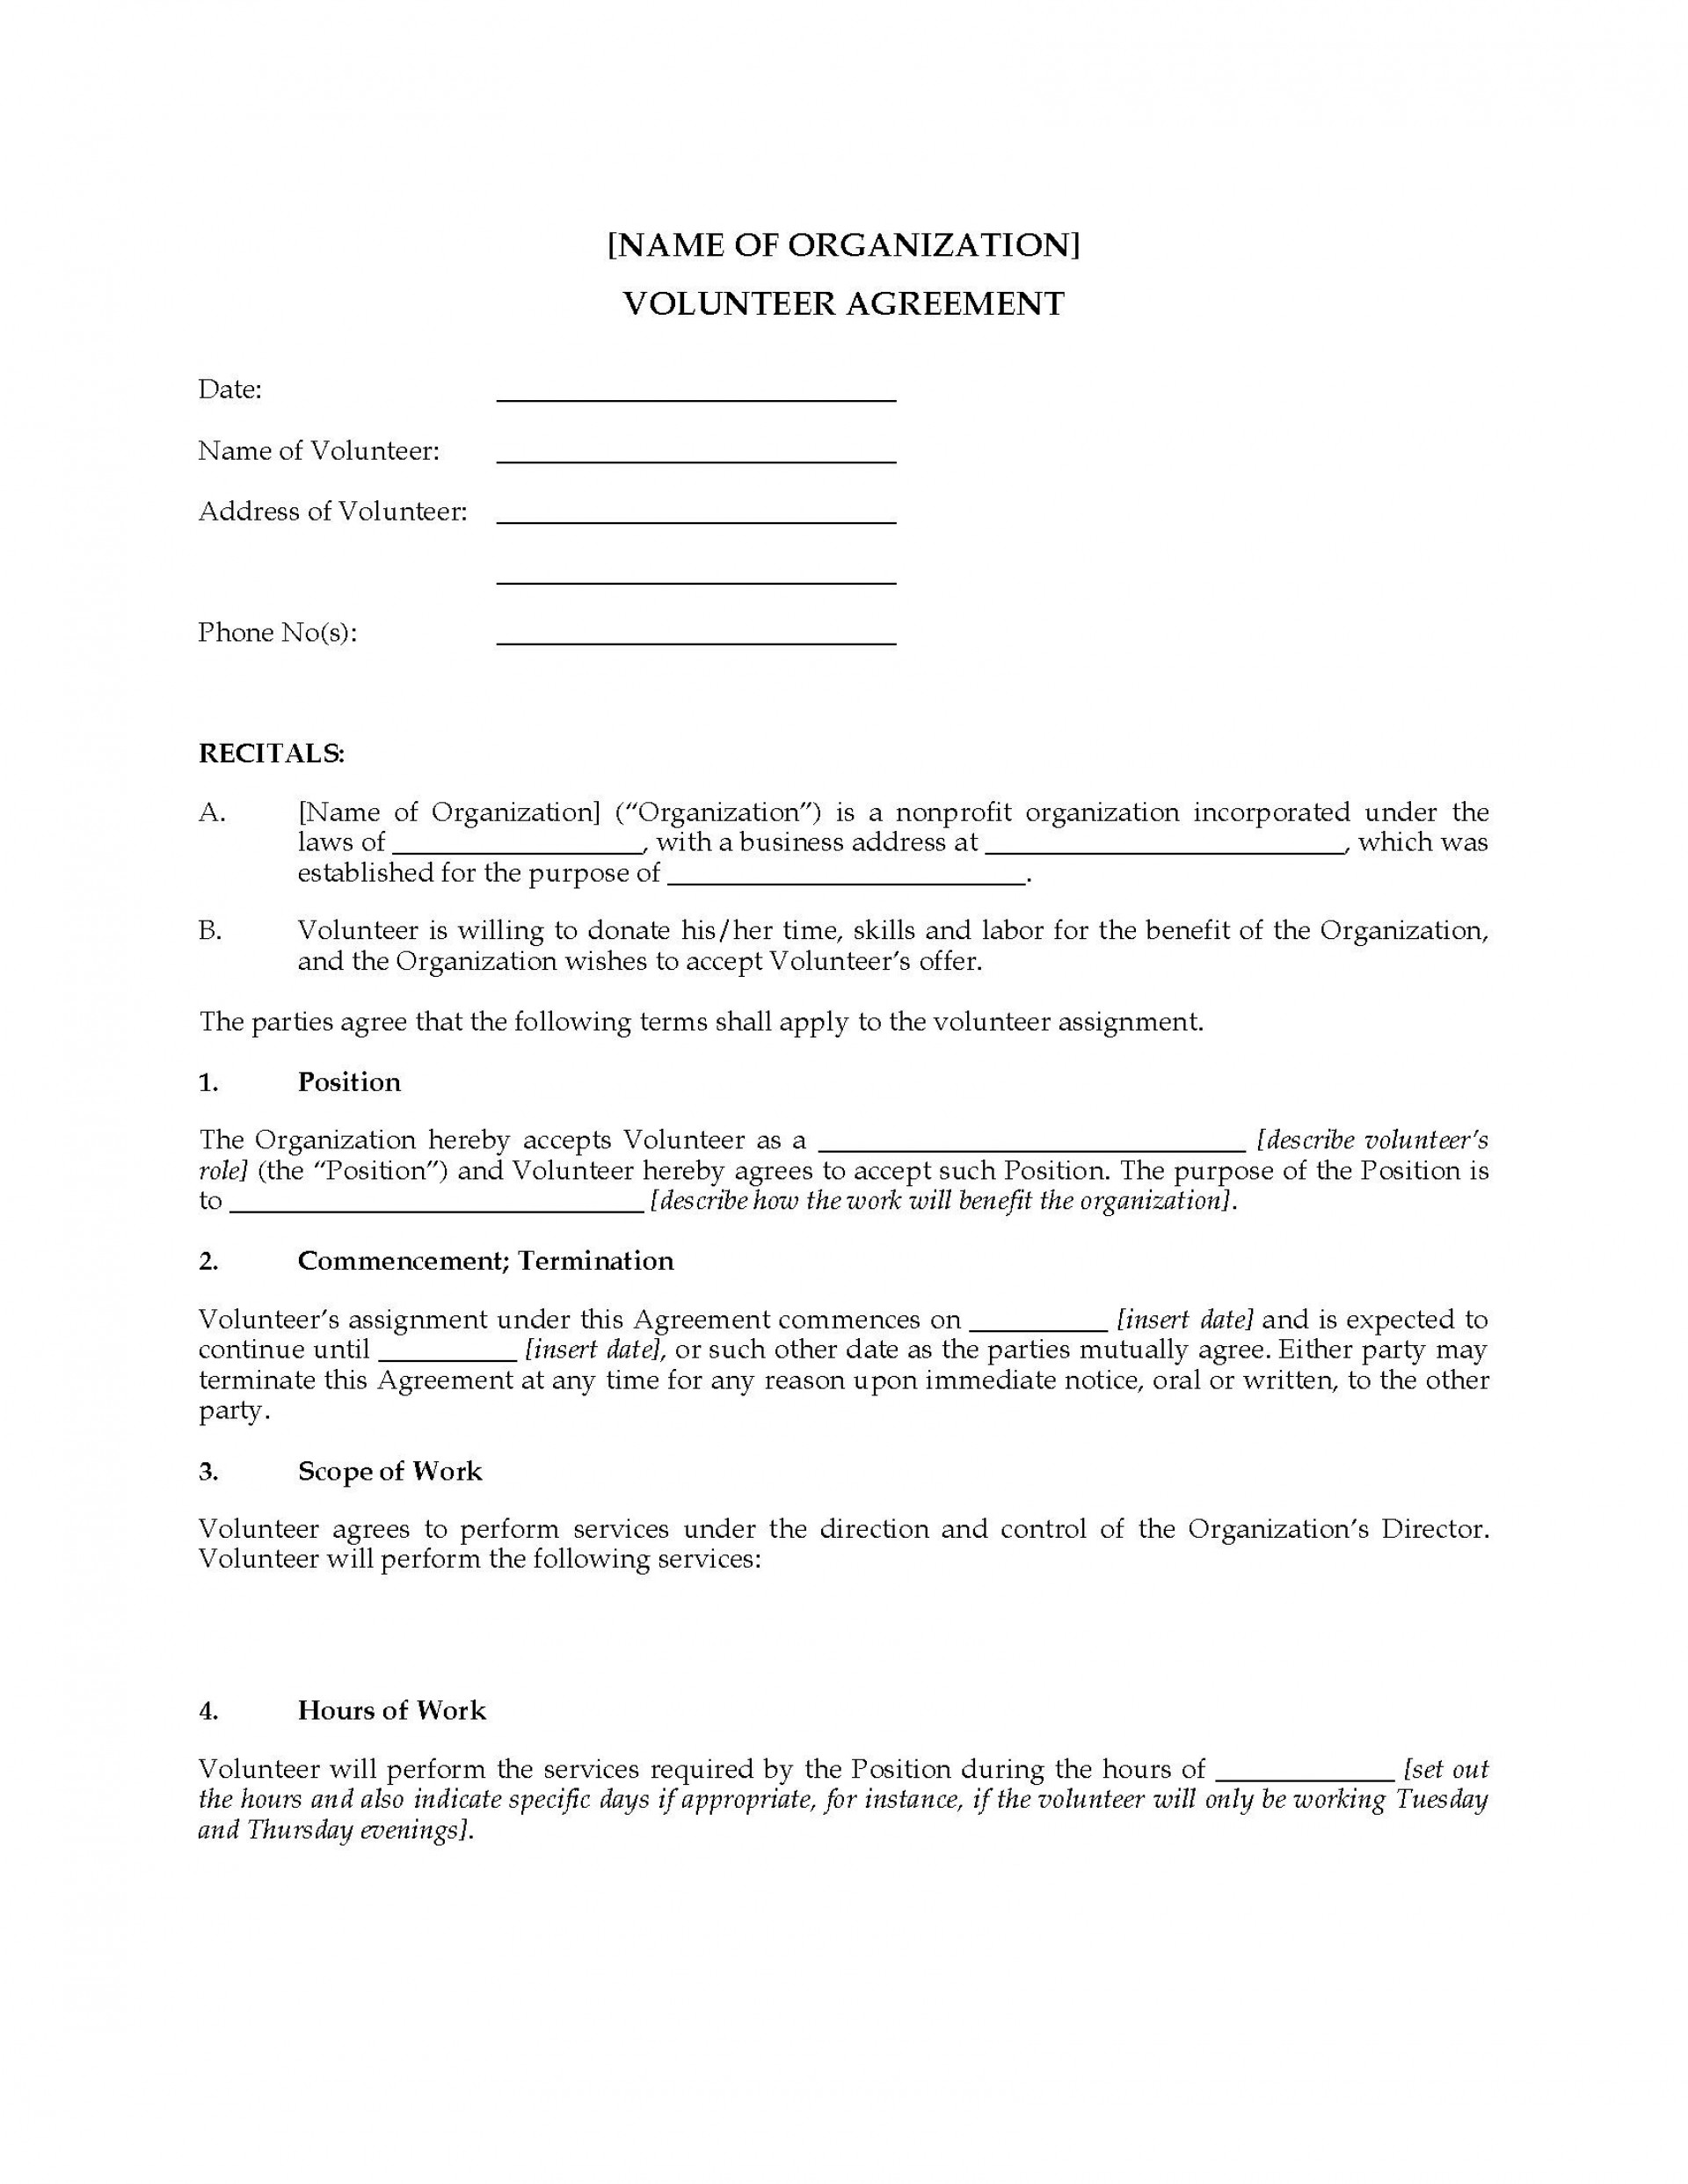 003 Shocking Volunteer Application Template For Nonprofit Photo  Sample Form1920